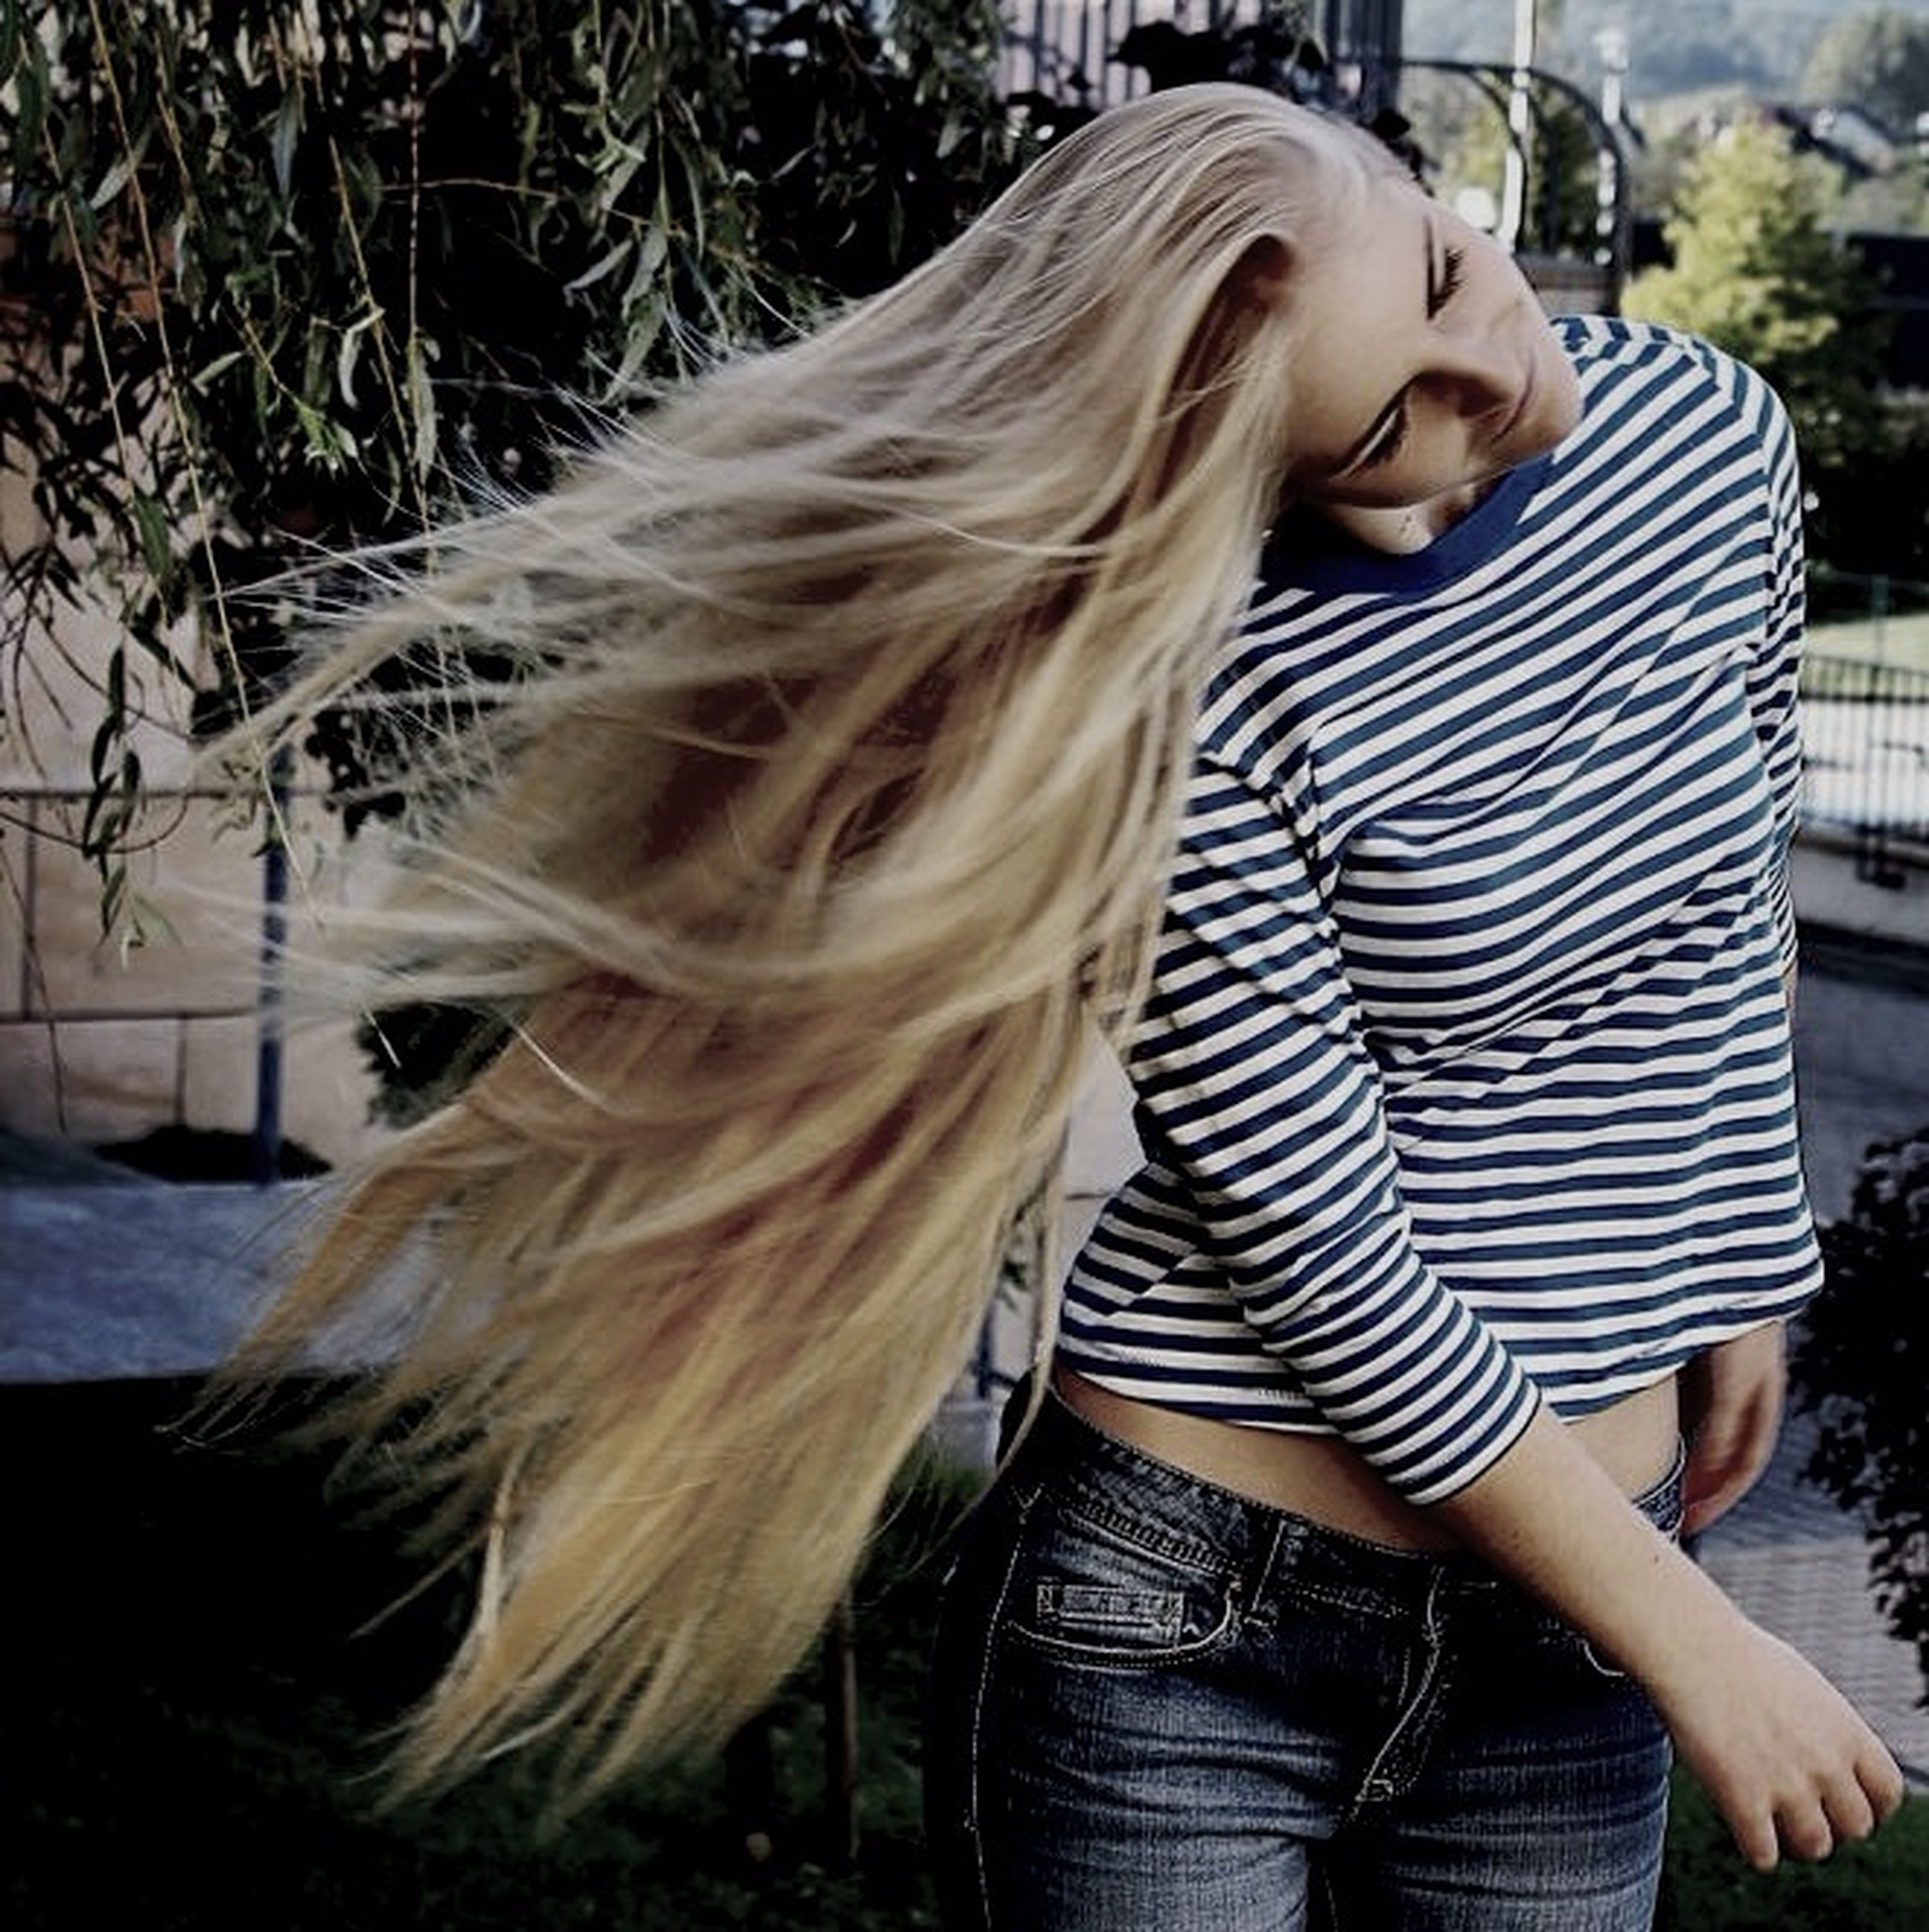 long hair, lifestyles, casual clothing, young women, person, blond hair, rear view, focus on foreground, leisure activity, standing, young adult, waist up, side view, three quarter length, outdoors, day, human hair